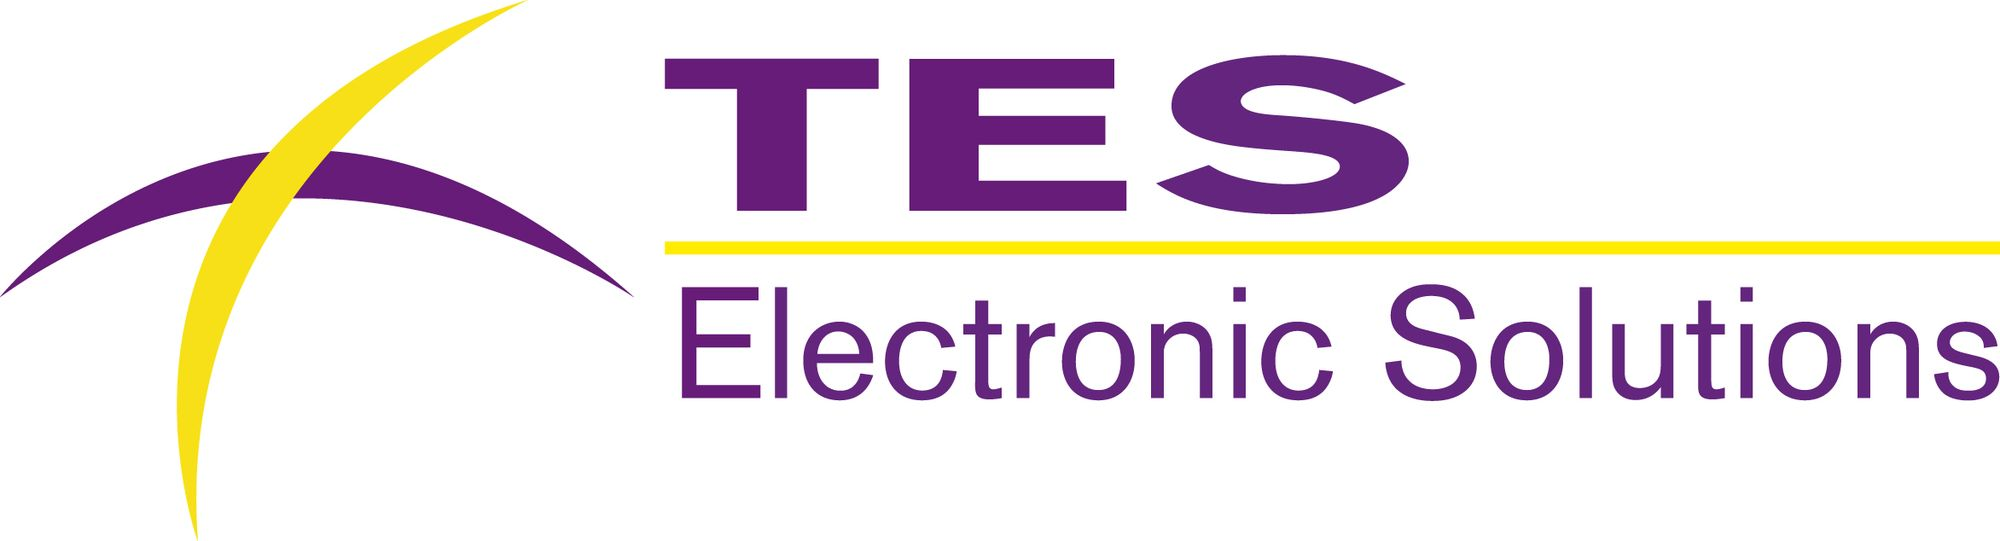 TES Electronic Solutions d.o.o.